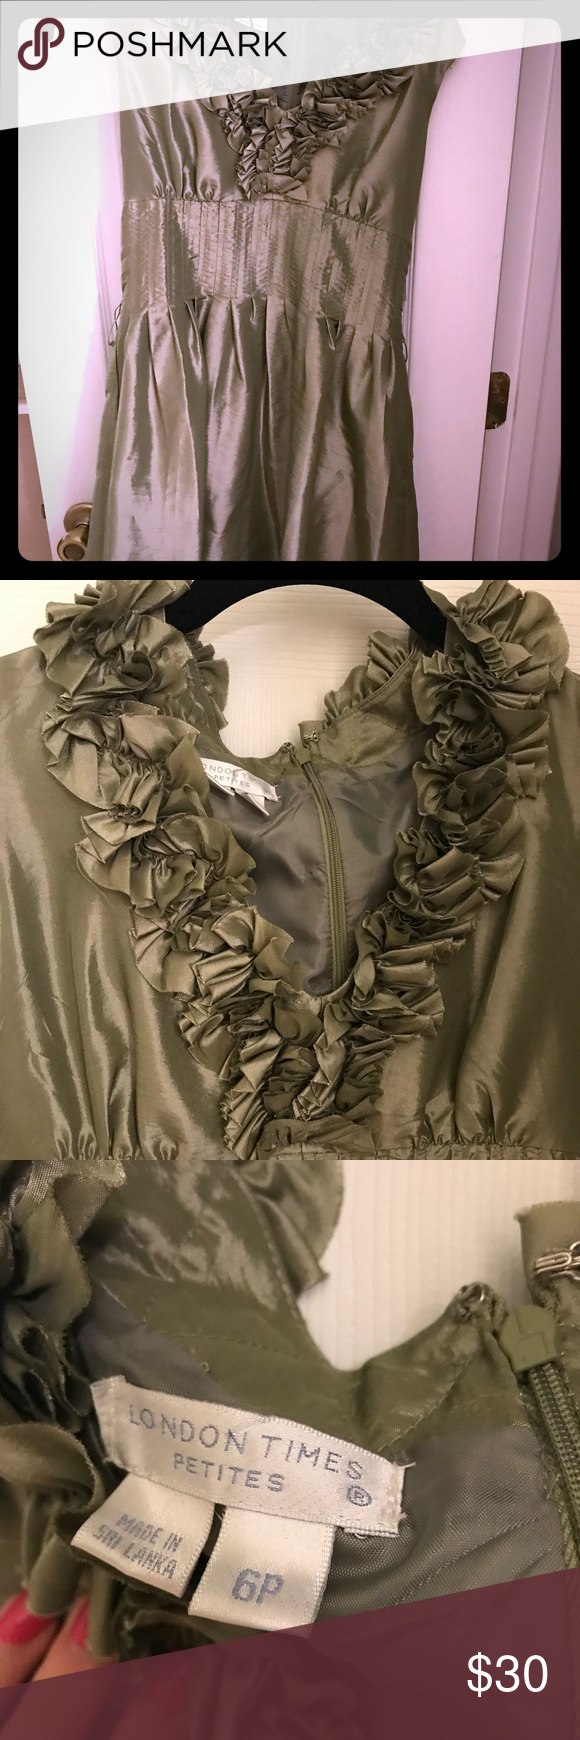 New! Beautiful Sage green dress 50% polyester 50% nylon. New sage green dress with ruffles and sash. London Times Dresses #sagegreendress